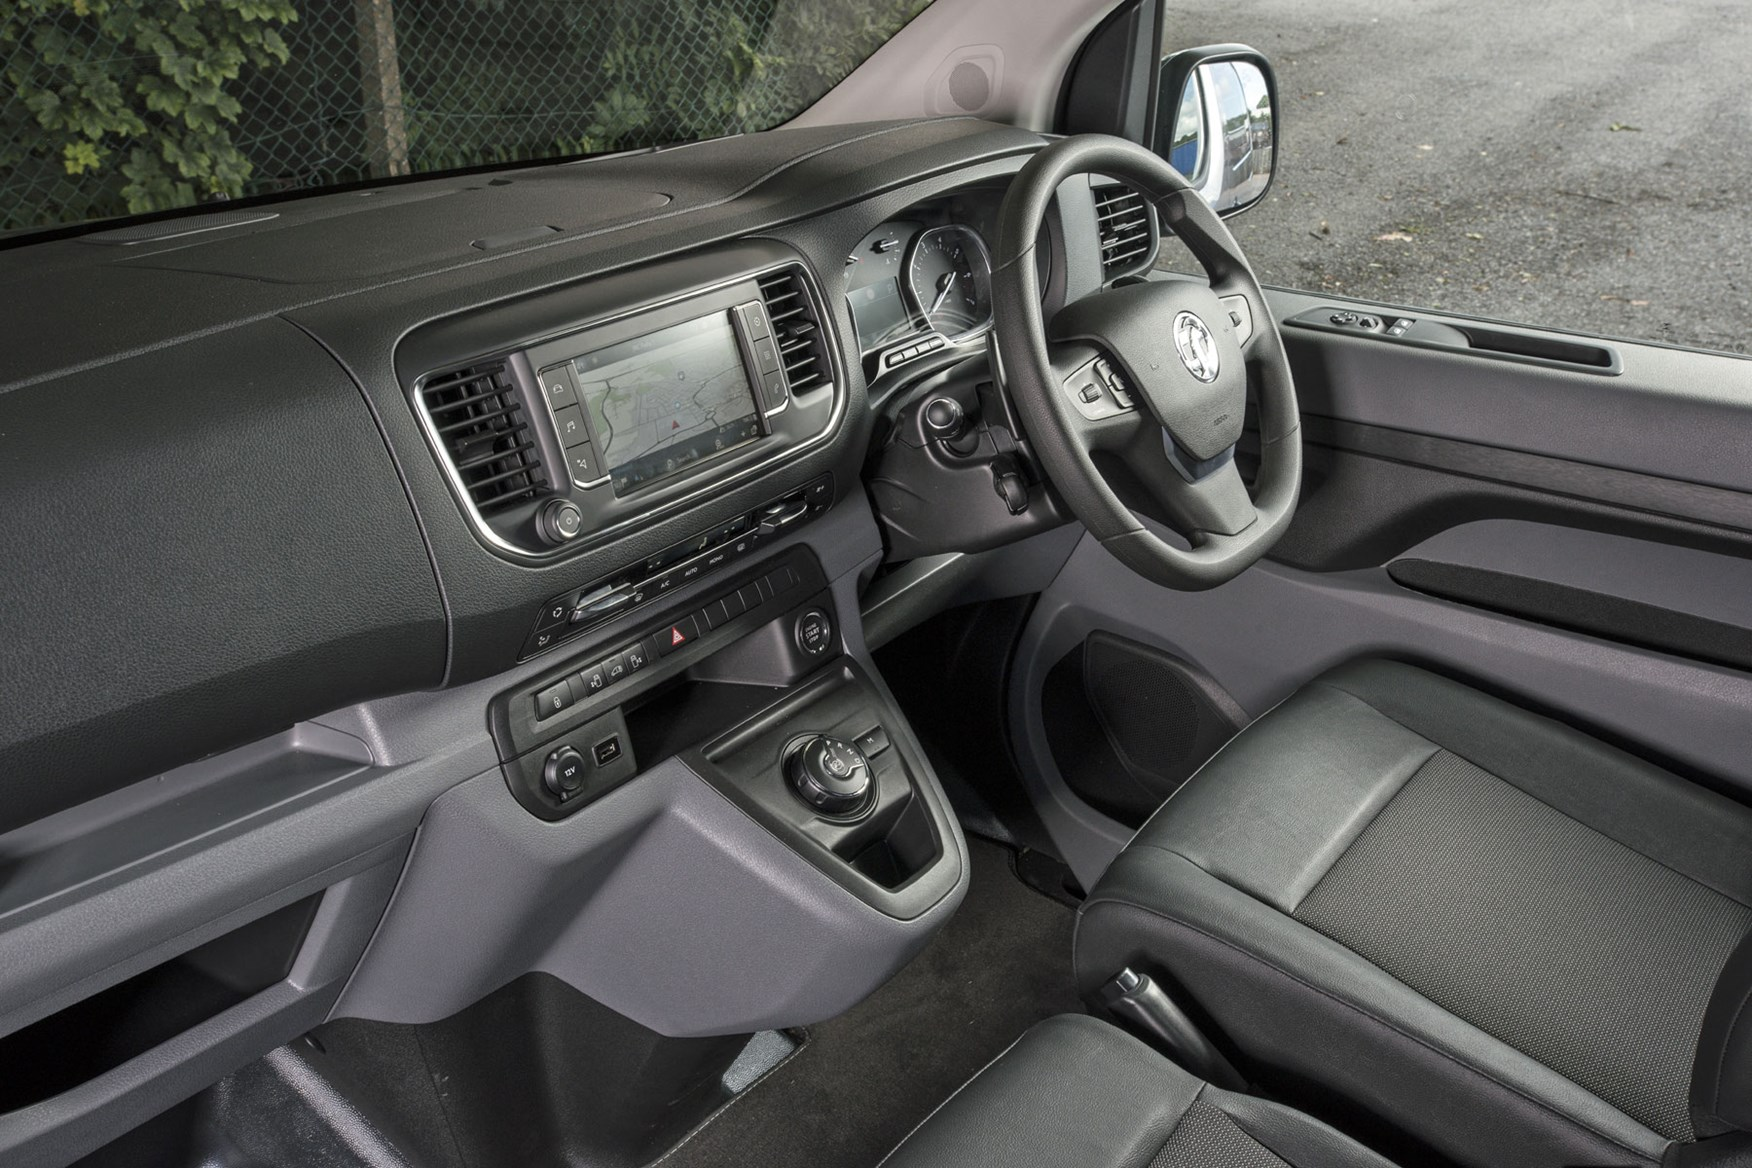 Vauxhall Vivaro review - right-hand drive cab interior with eight-speed automatic gearbox